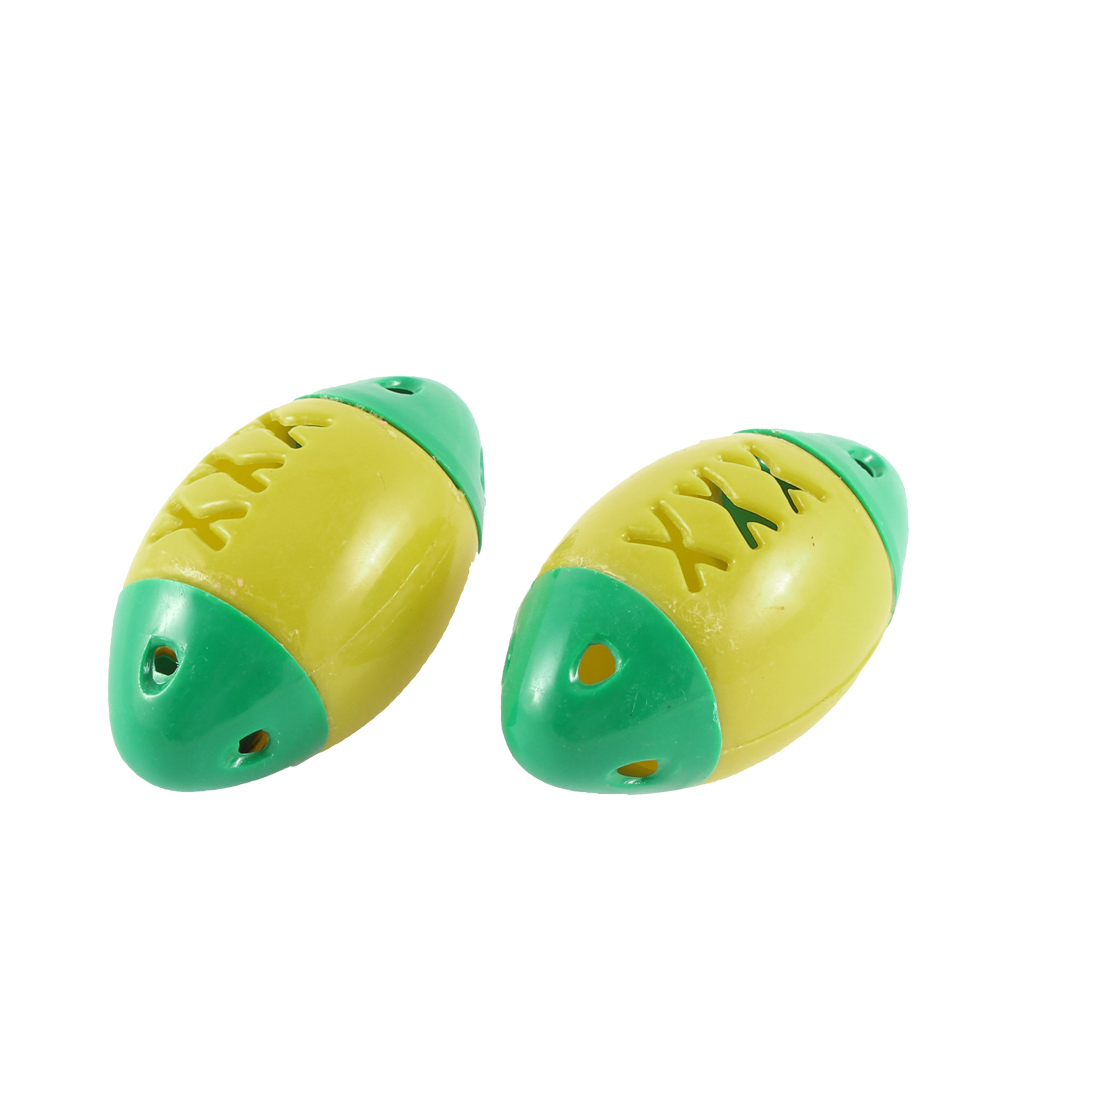 2Pcs Fish Shape Pet Cat Plastic Ball Bell Shaking Sound Toys Yellow Green